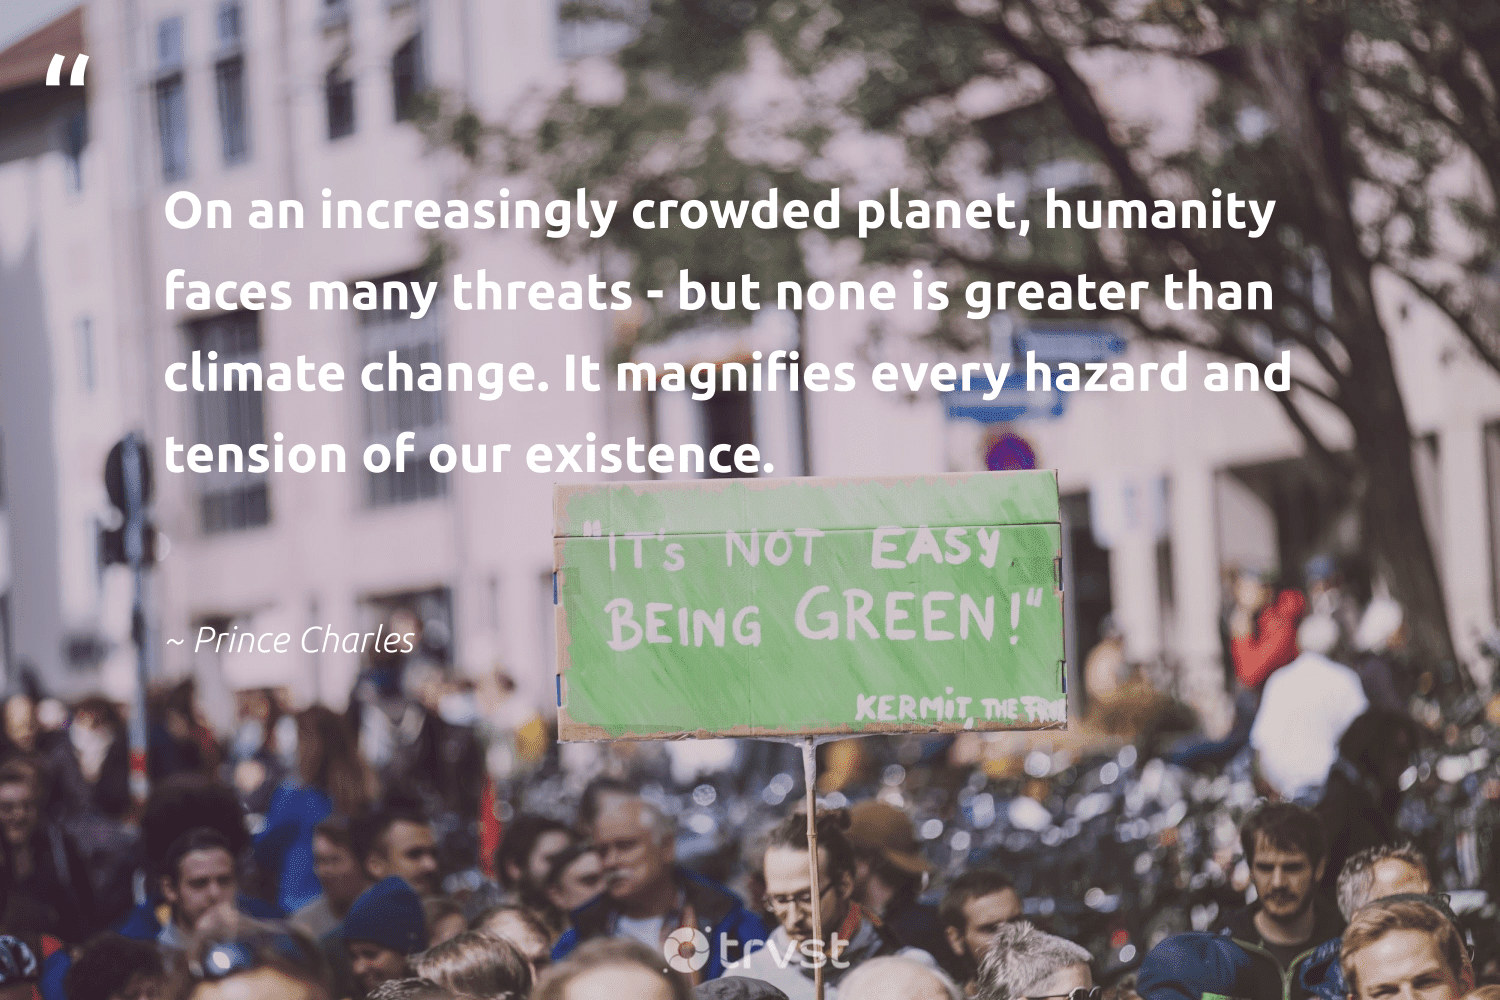 """""""On an increasingly crowded planet, humanity faces many threats - but none is greater than climate change. It magnifies every hazard and tension of our existence.""""  - Prince Charles #trvst #quotes #climatechange #planet #climate #globalwarming #mothernature #climatechangeisreal #climateaction #ecoconscious #co2 #environment"""